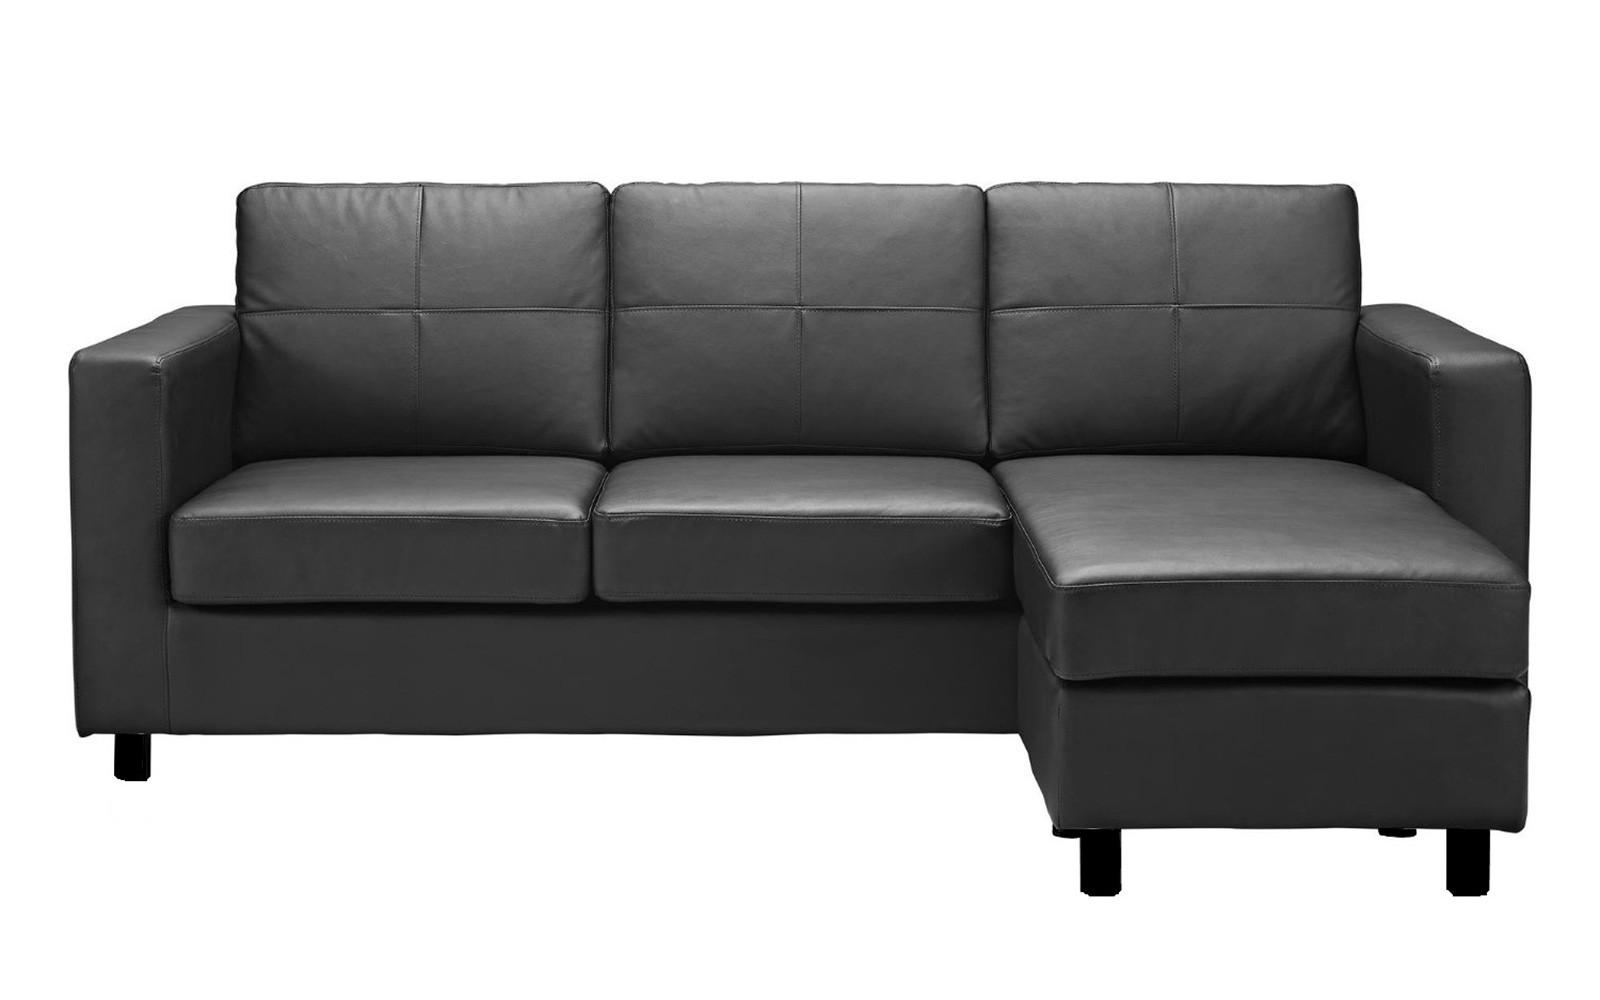 Modern Reversible Small Space Configurable Bonded Leather With Regard To Modern Sectional Sofas For Small Spaces (View 8 of 20)